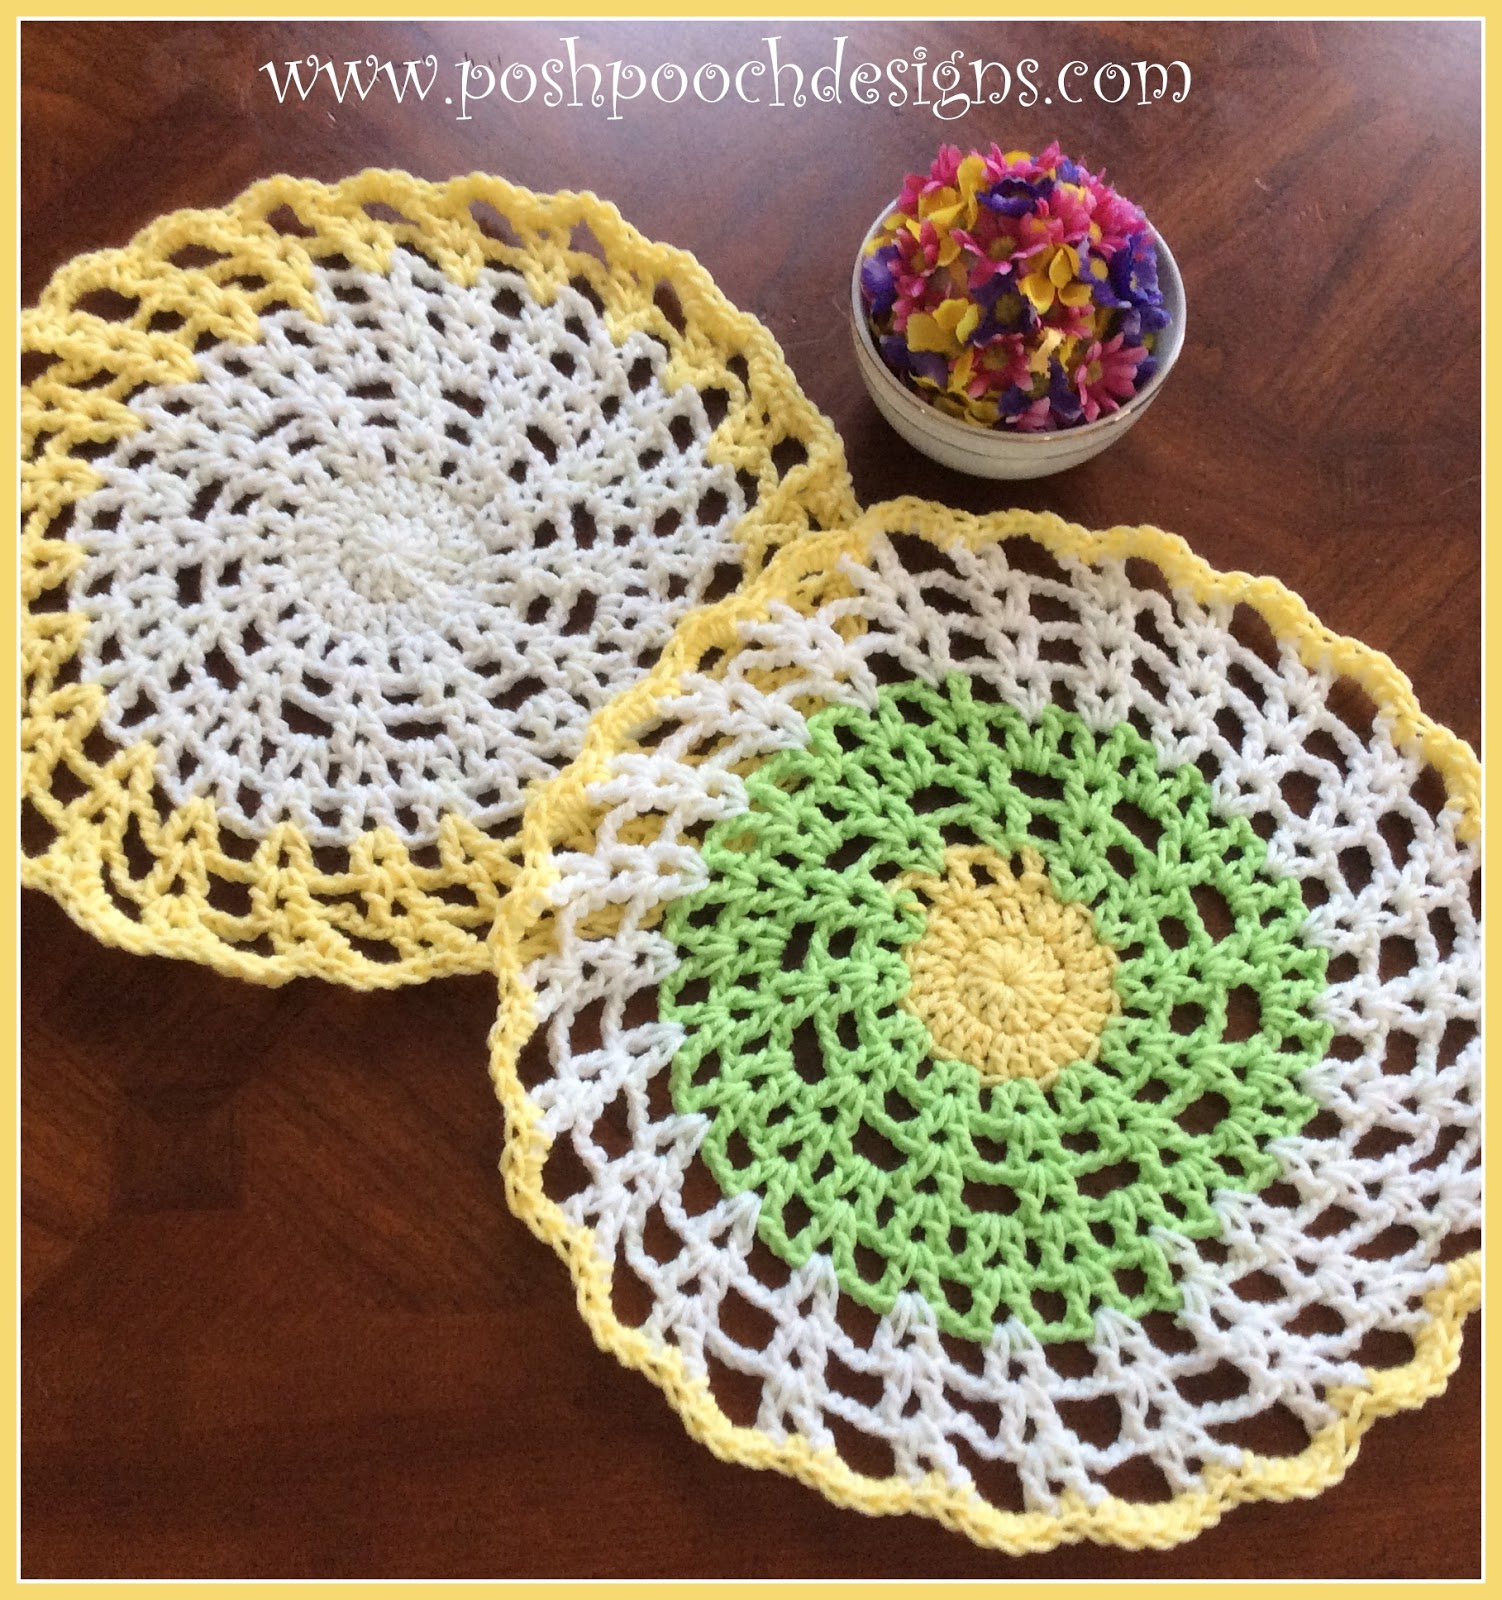 Posh Pooch Designs Dog Clothes Round Cotton Placemat Free Crochet